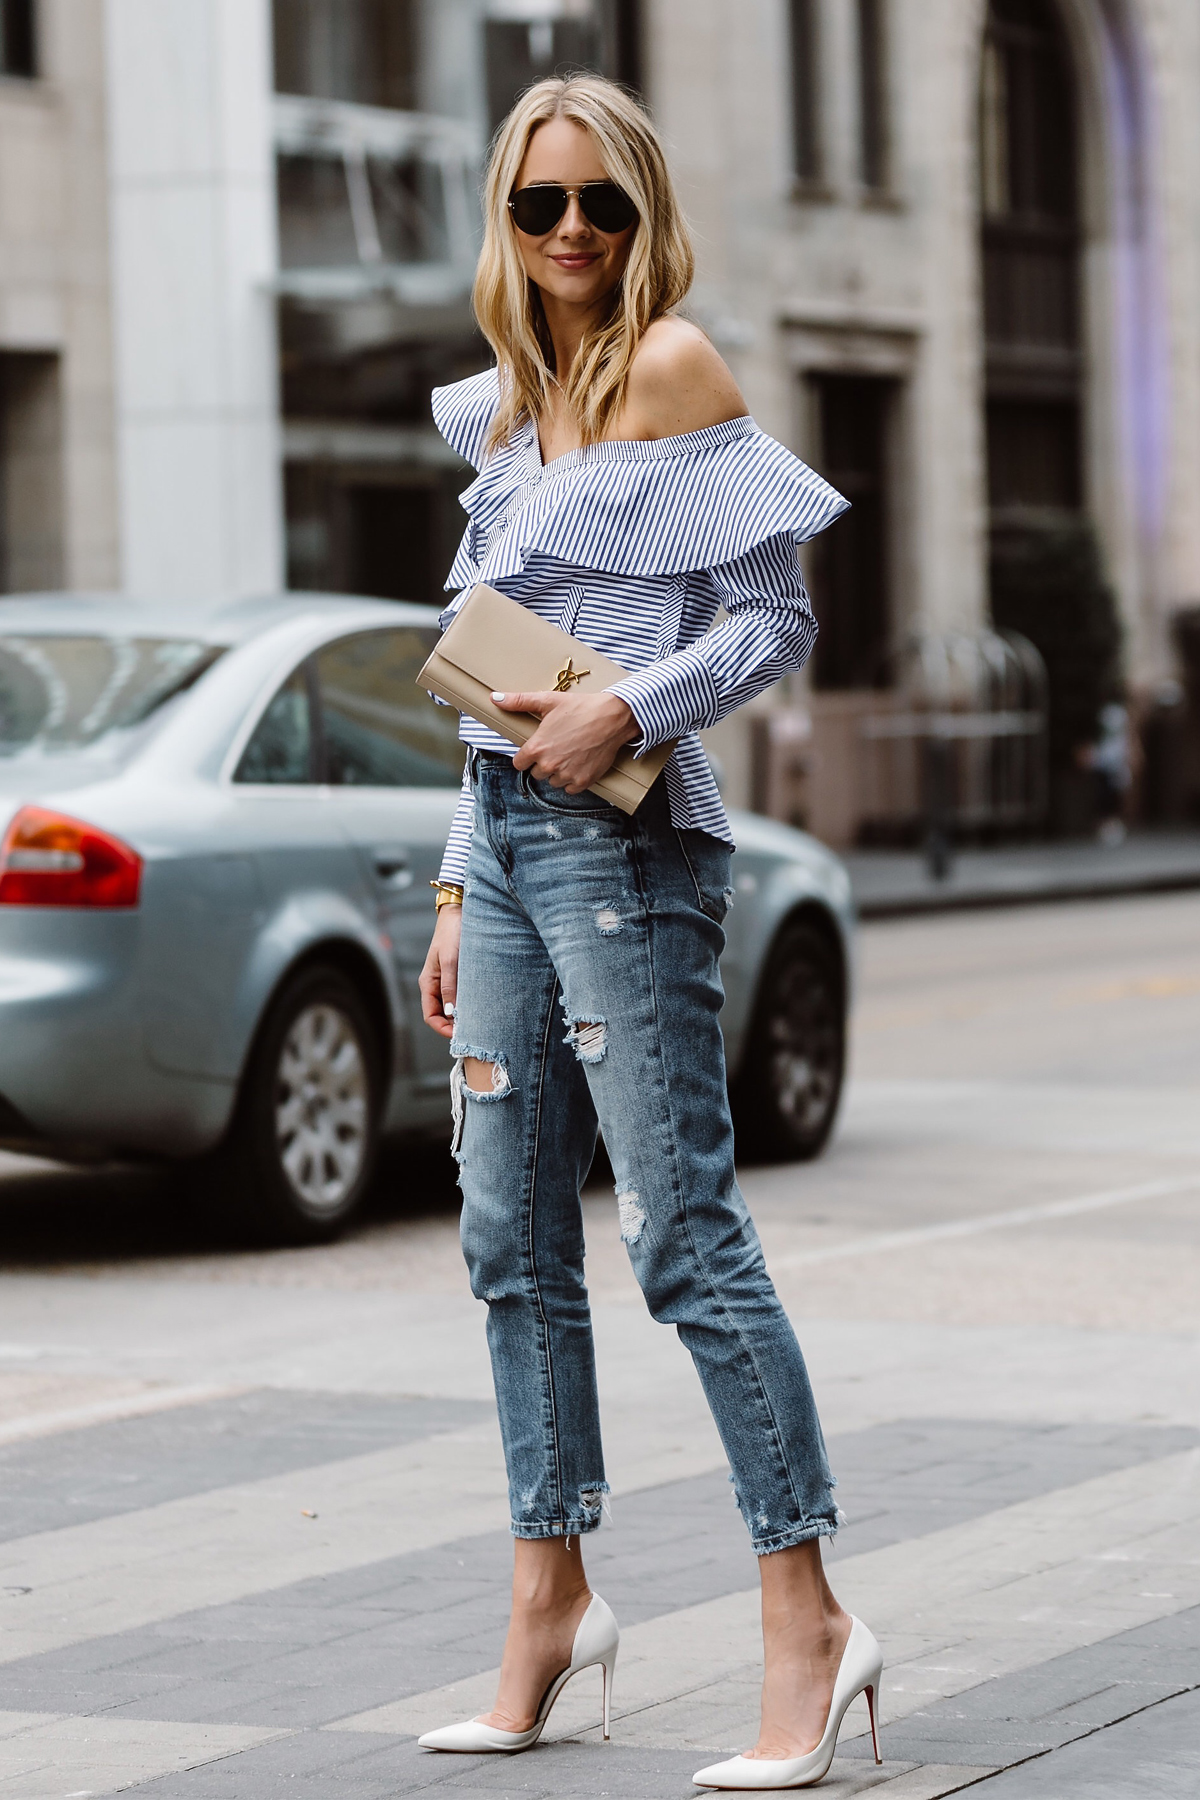 Fashion Jackson, Dallas Blogger, Fashion Blogger, Street Style, Self-Portrait Asymmetrical Ruffle Top, Blue White Stripe Top, Blanknyc Ms Throwback Relaxed Denim Ripped Jeans, Saint Laurent Monogram Clutch, Celine Aviator Sunglasses, Christian Louboutin White Pumps